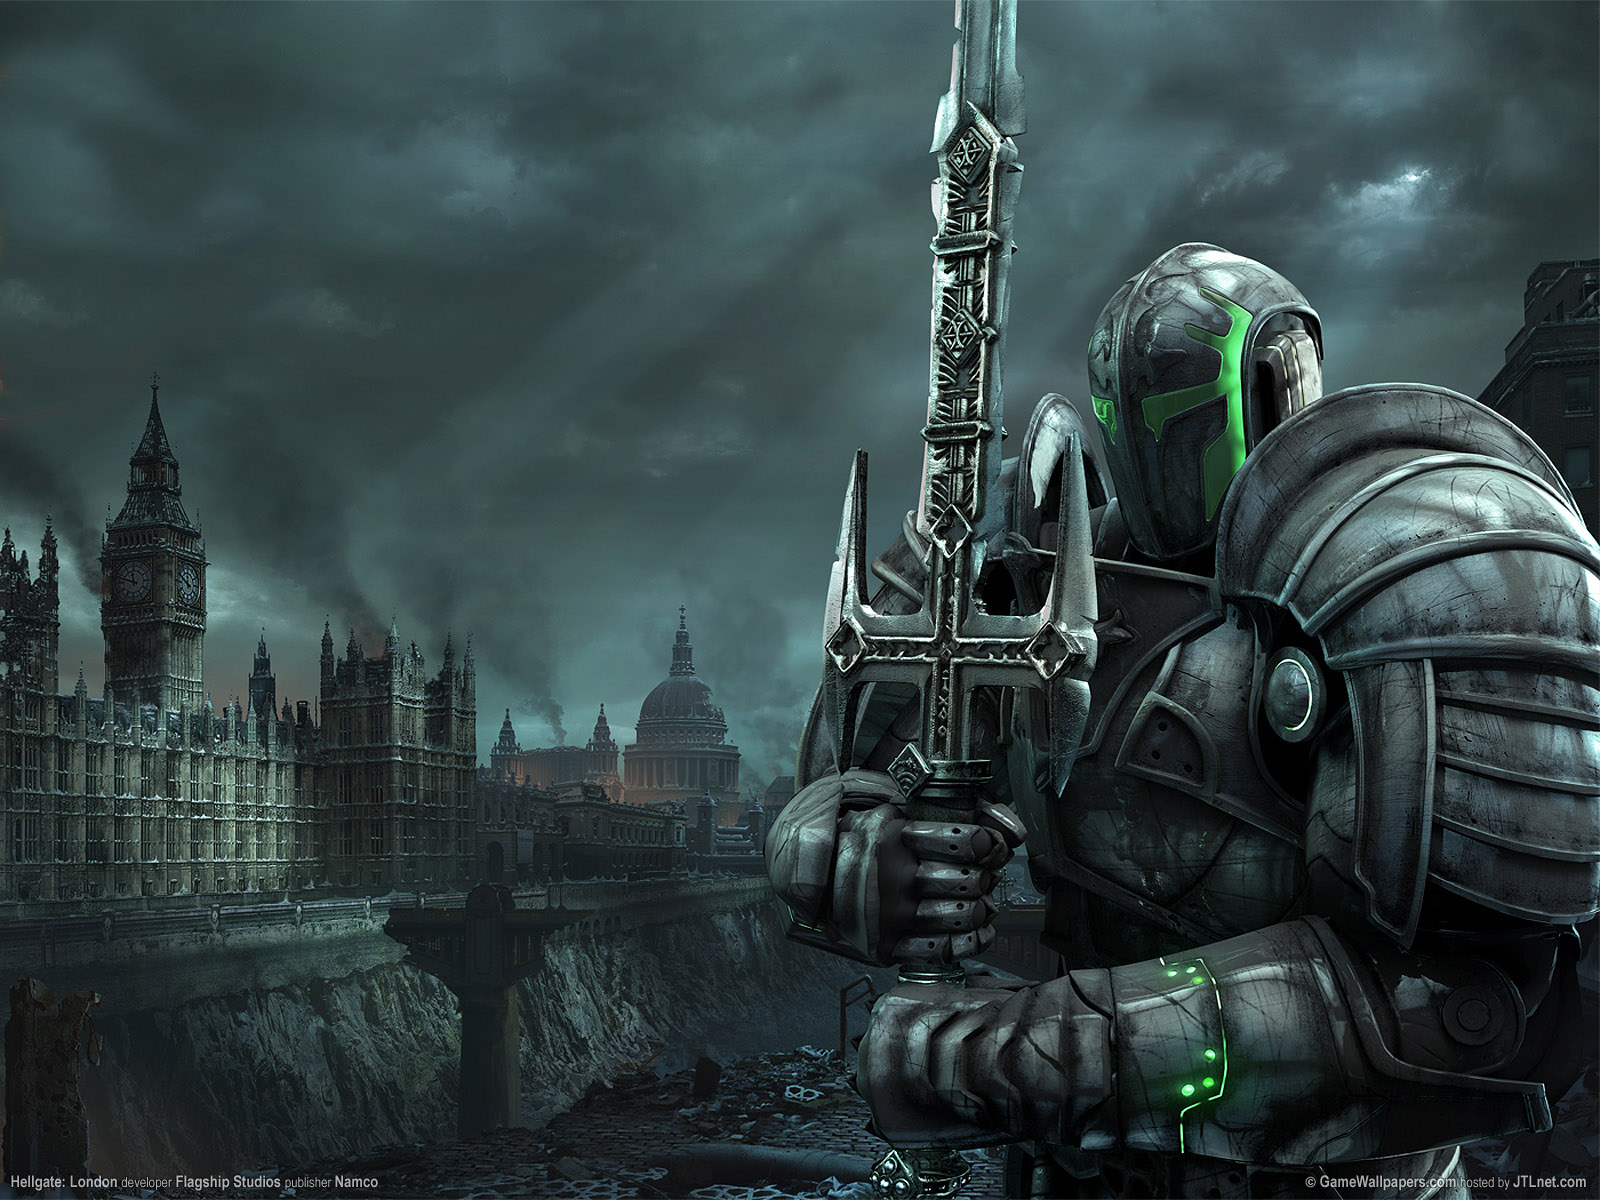 wallpaper_hellgate_london_02_1600